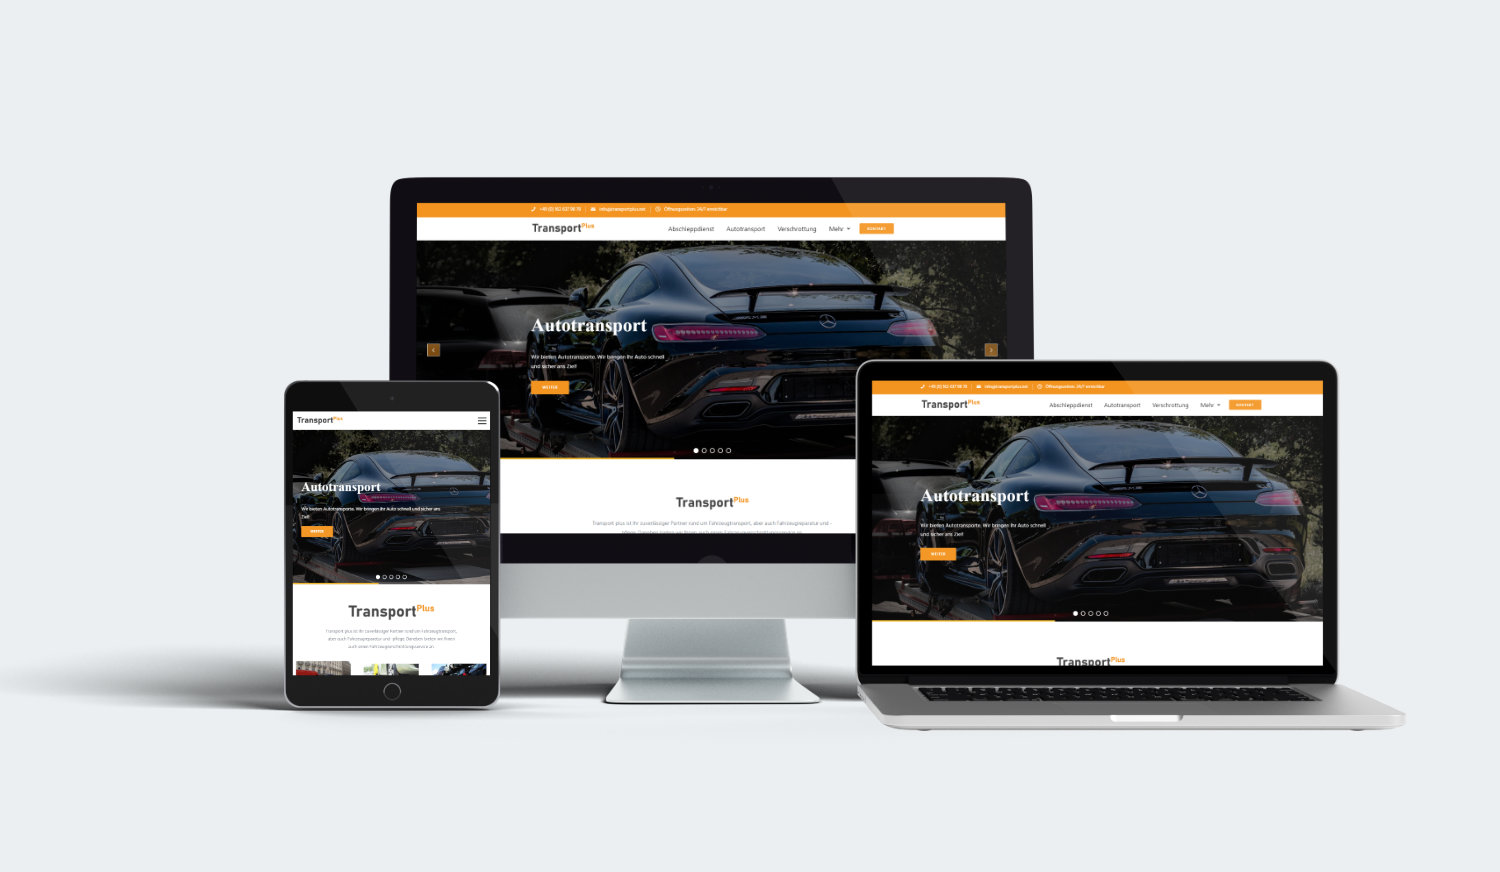 Transport plus website